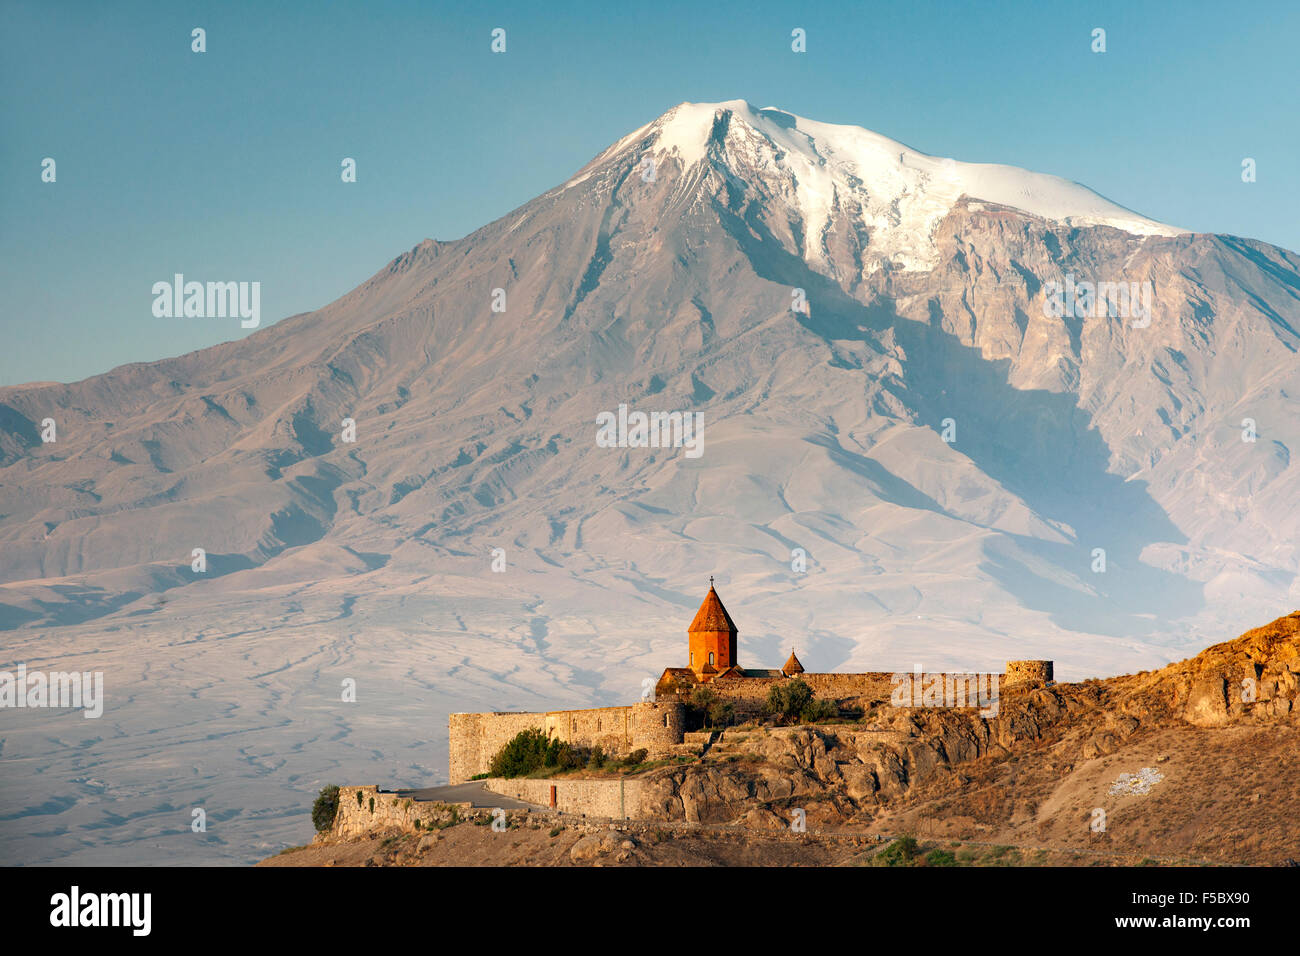 Khor Virap monastery in Armenia and Mount Ararat in Turkey. - Stock Image